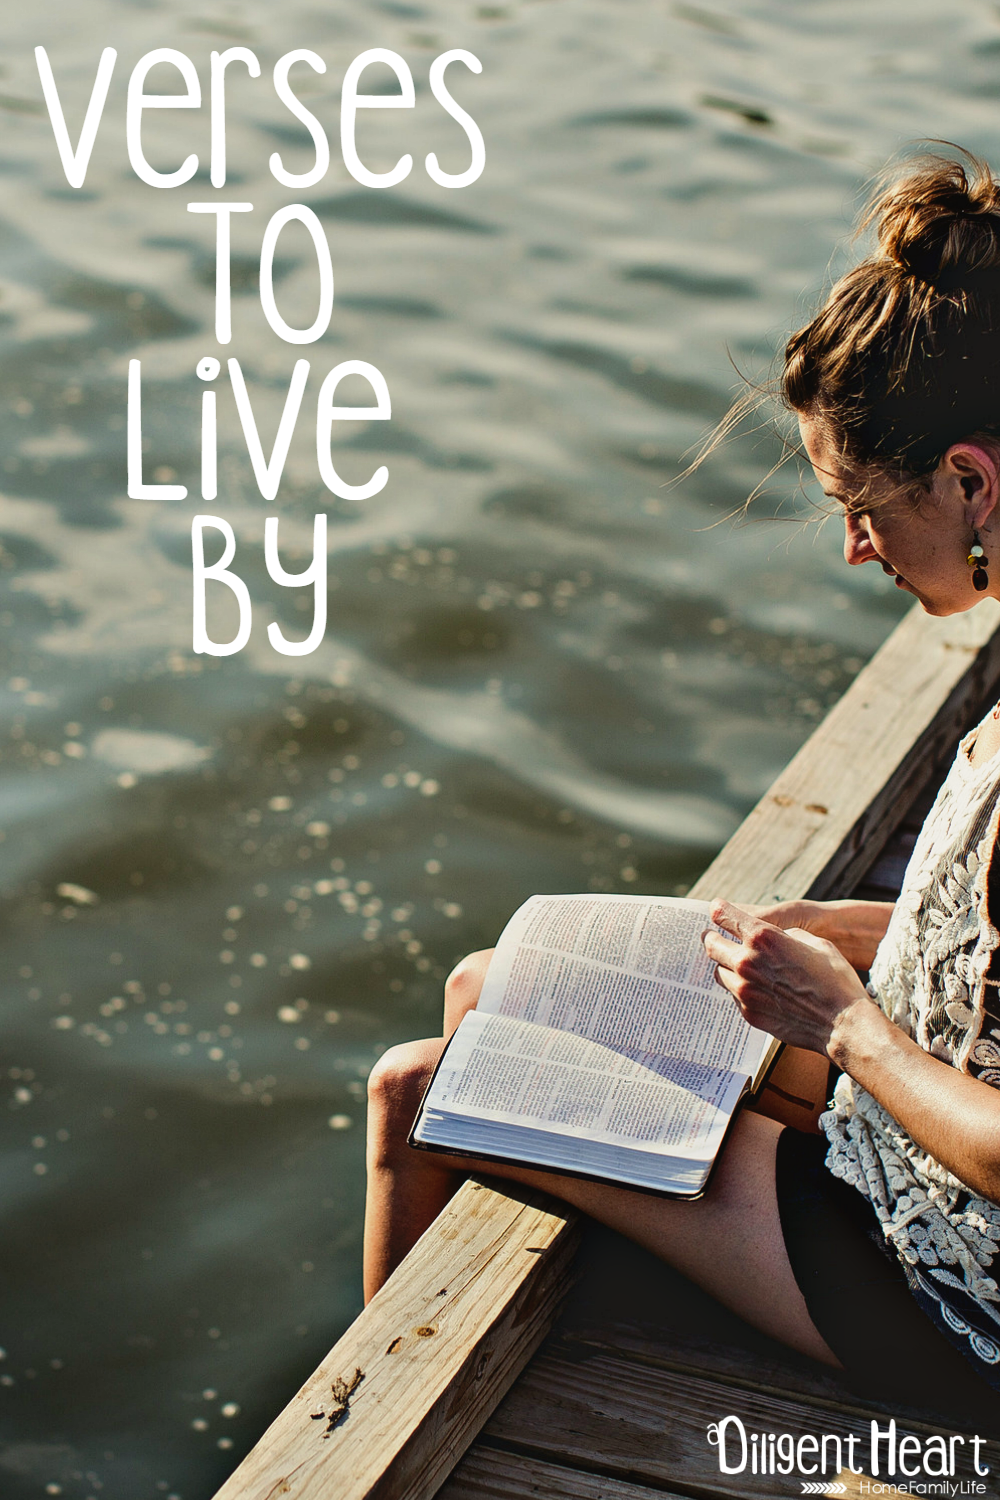 I think we are always naturally seeking guidelines to live after or aspire to. As a Christian, my inspiration and guide is the Bible. I've compiled some of my favorite verses to live by. Verses To Live By | adiligentheart.com